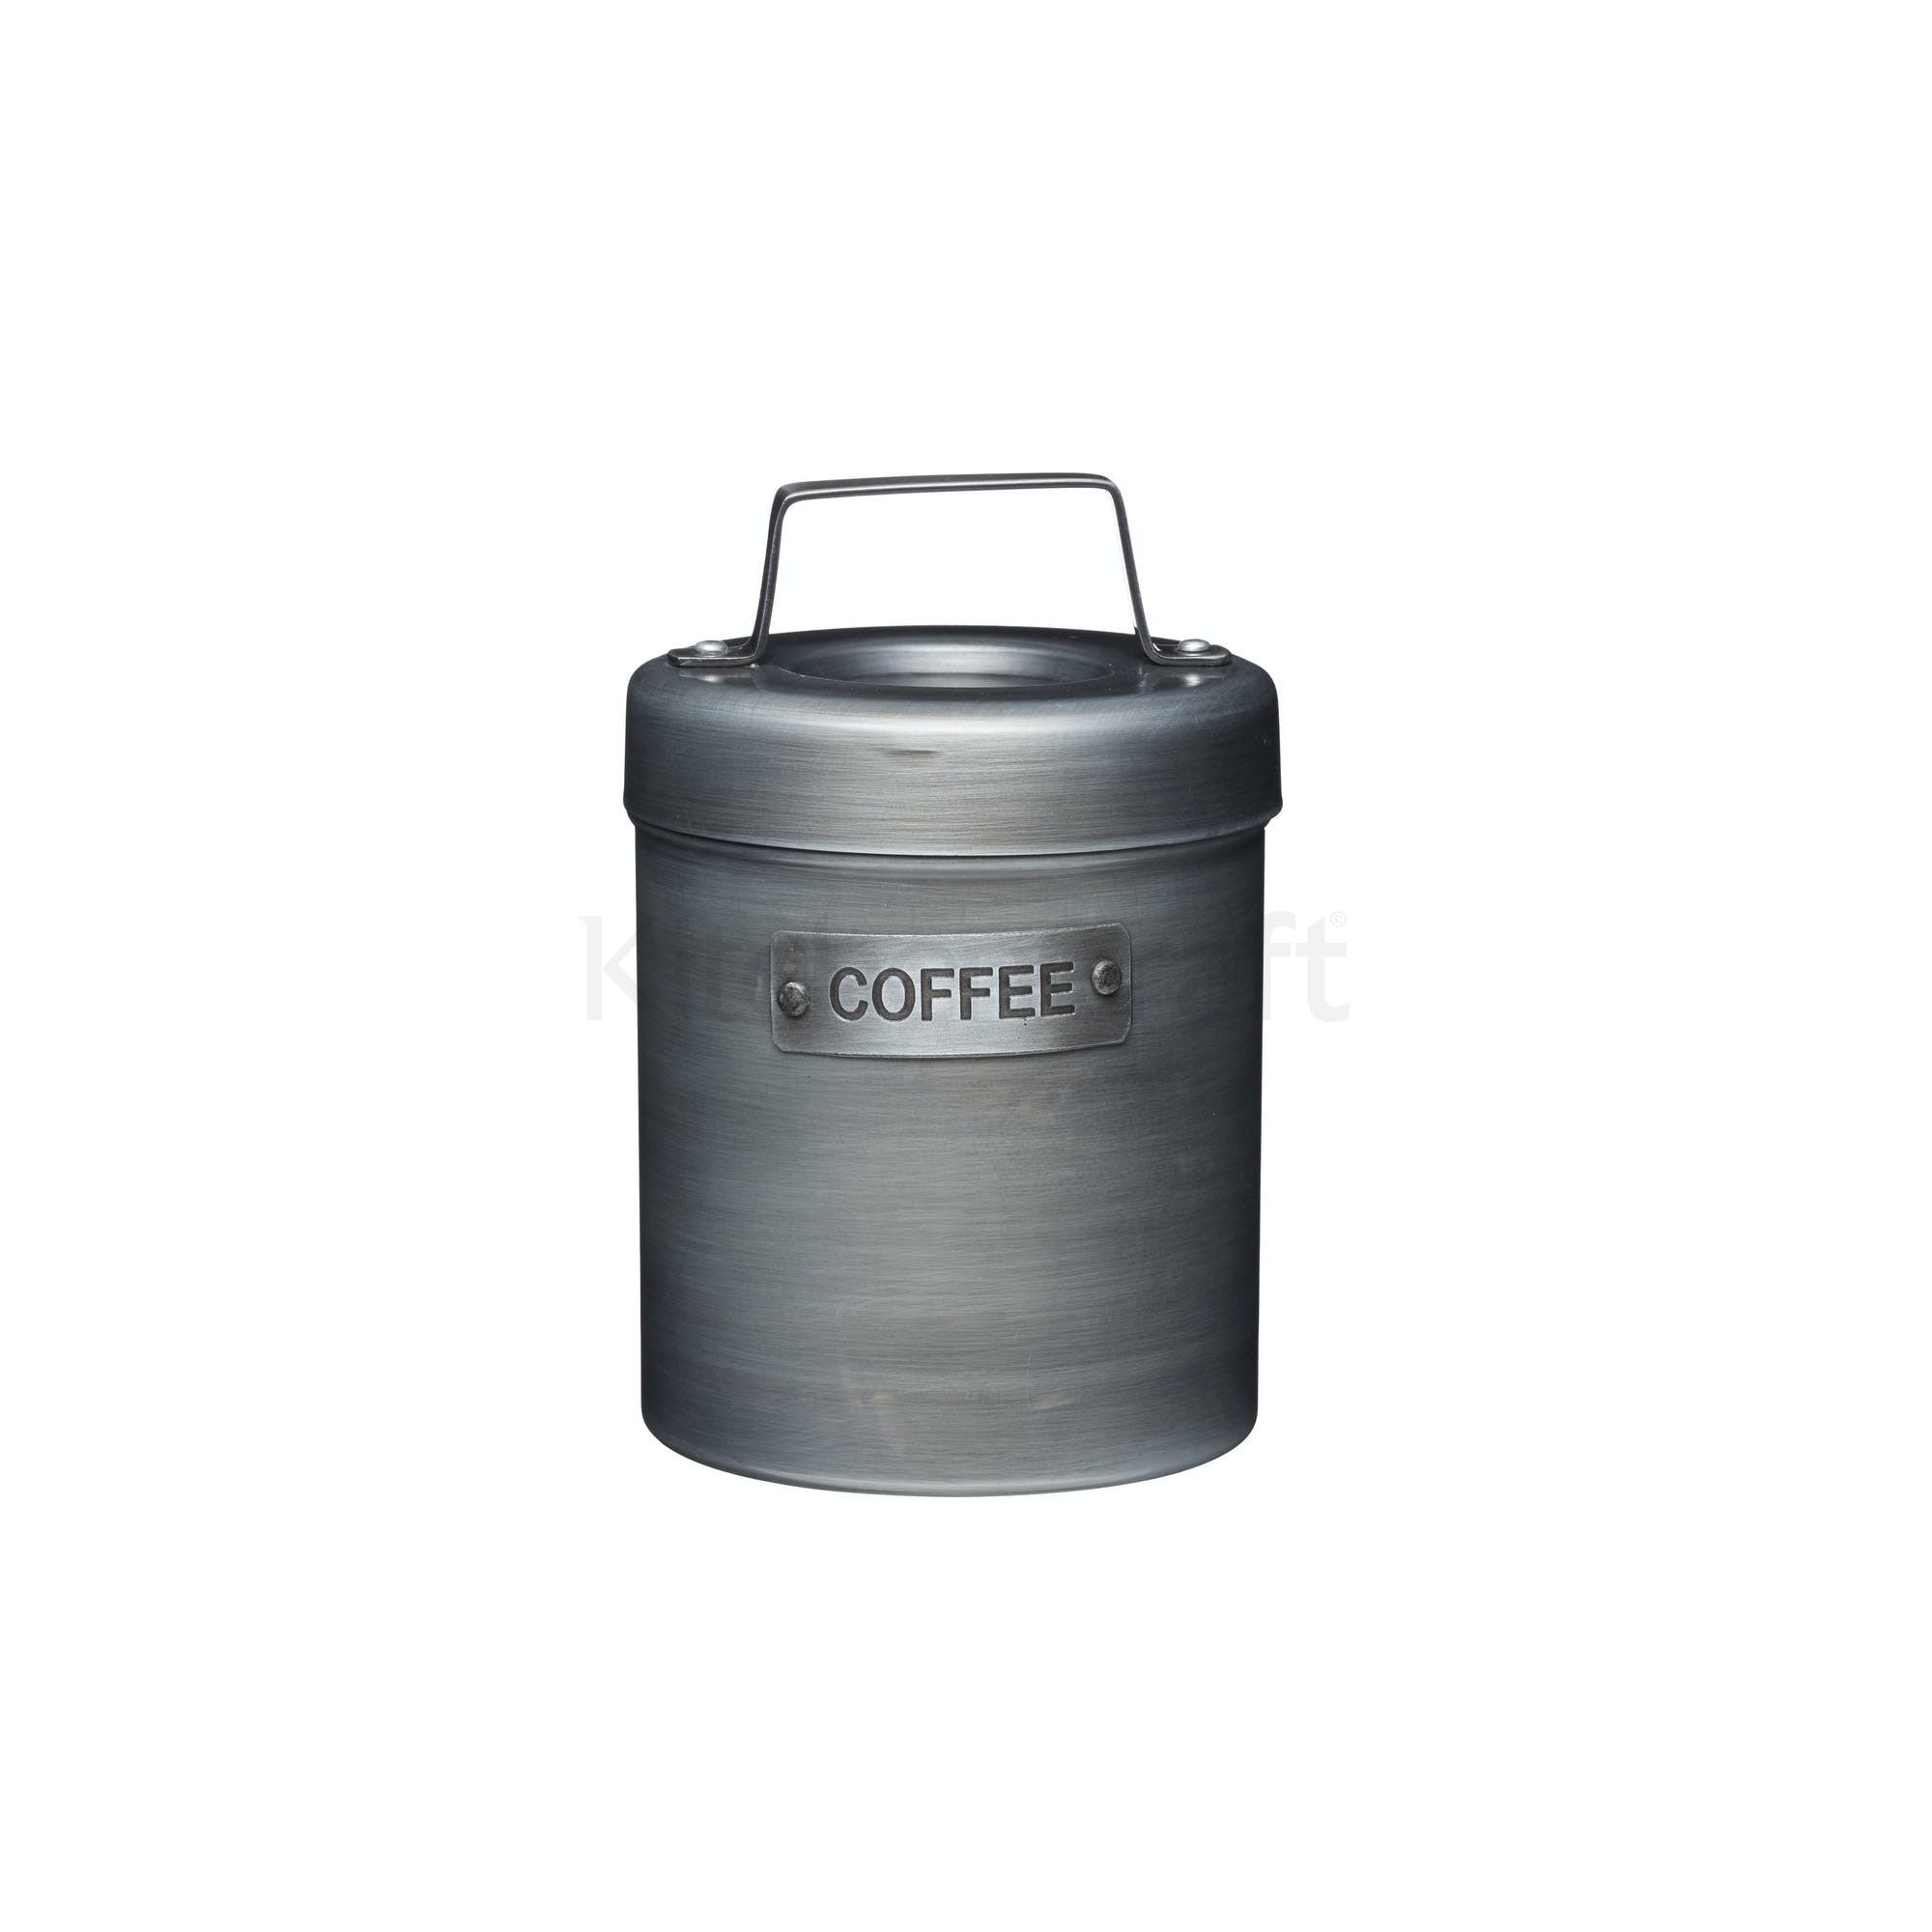 Industrial Kitchen Vintage Style Metal Coffee Canister